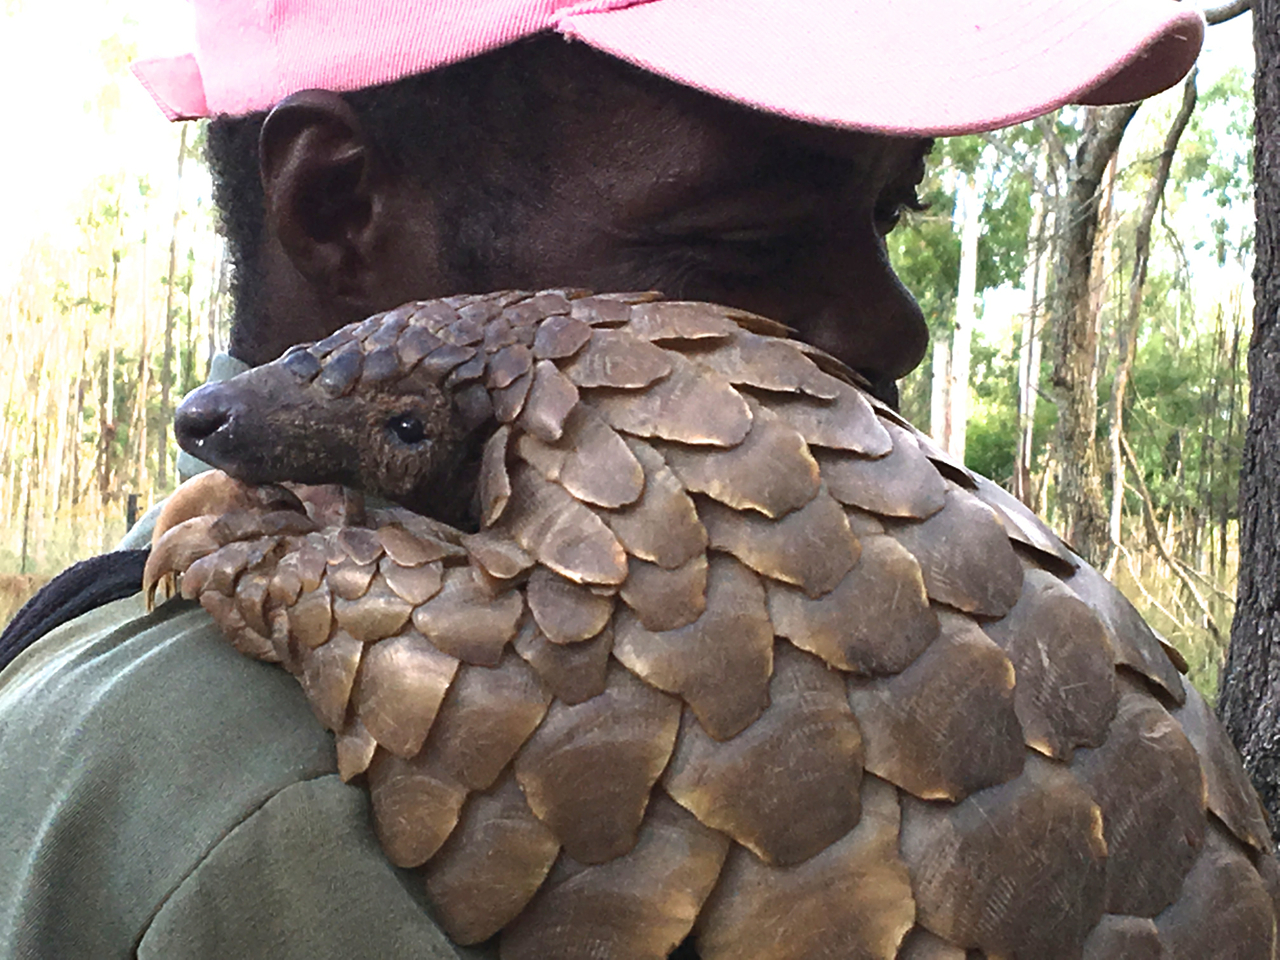 A pangolin in Zimbabwe with its handler/protector